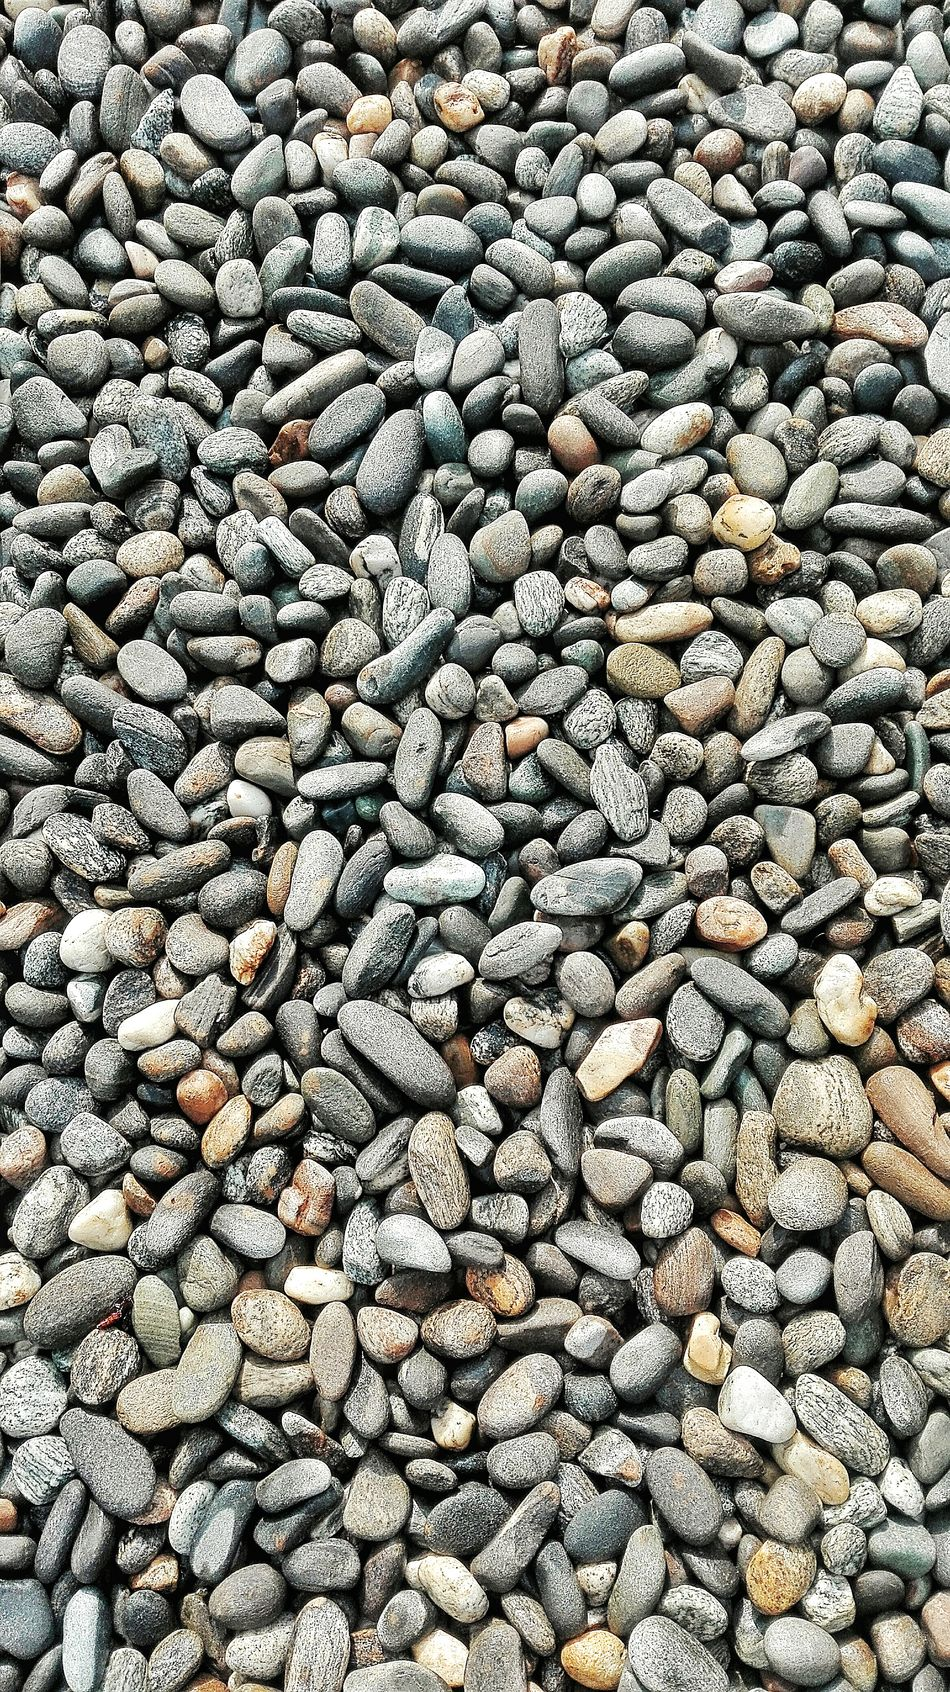 Pebbles for your wallpaper! Shotoftheday Wallpaper